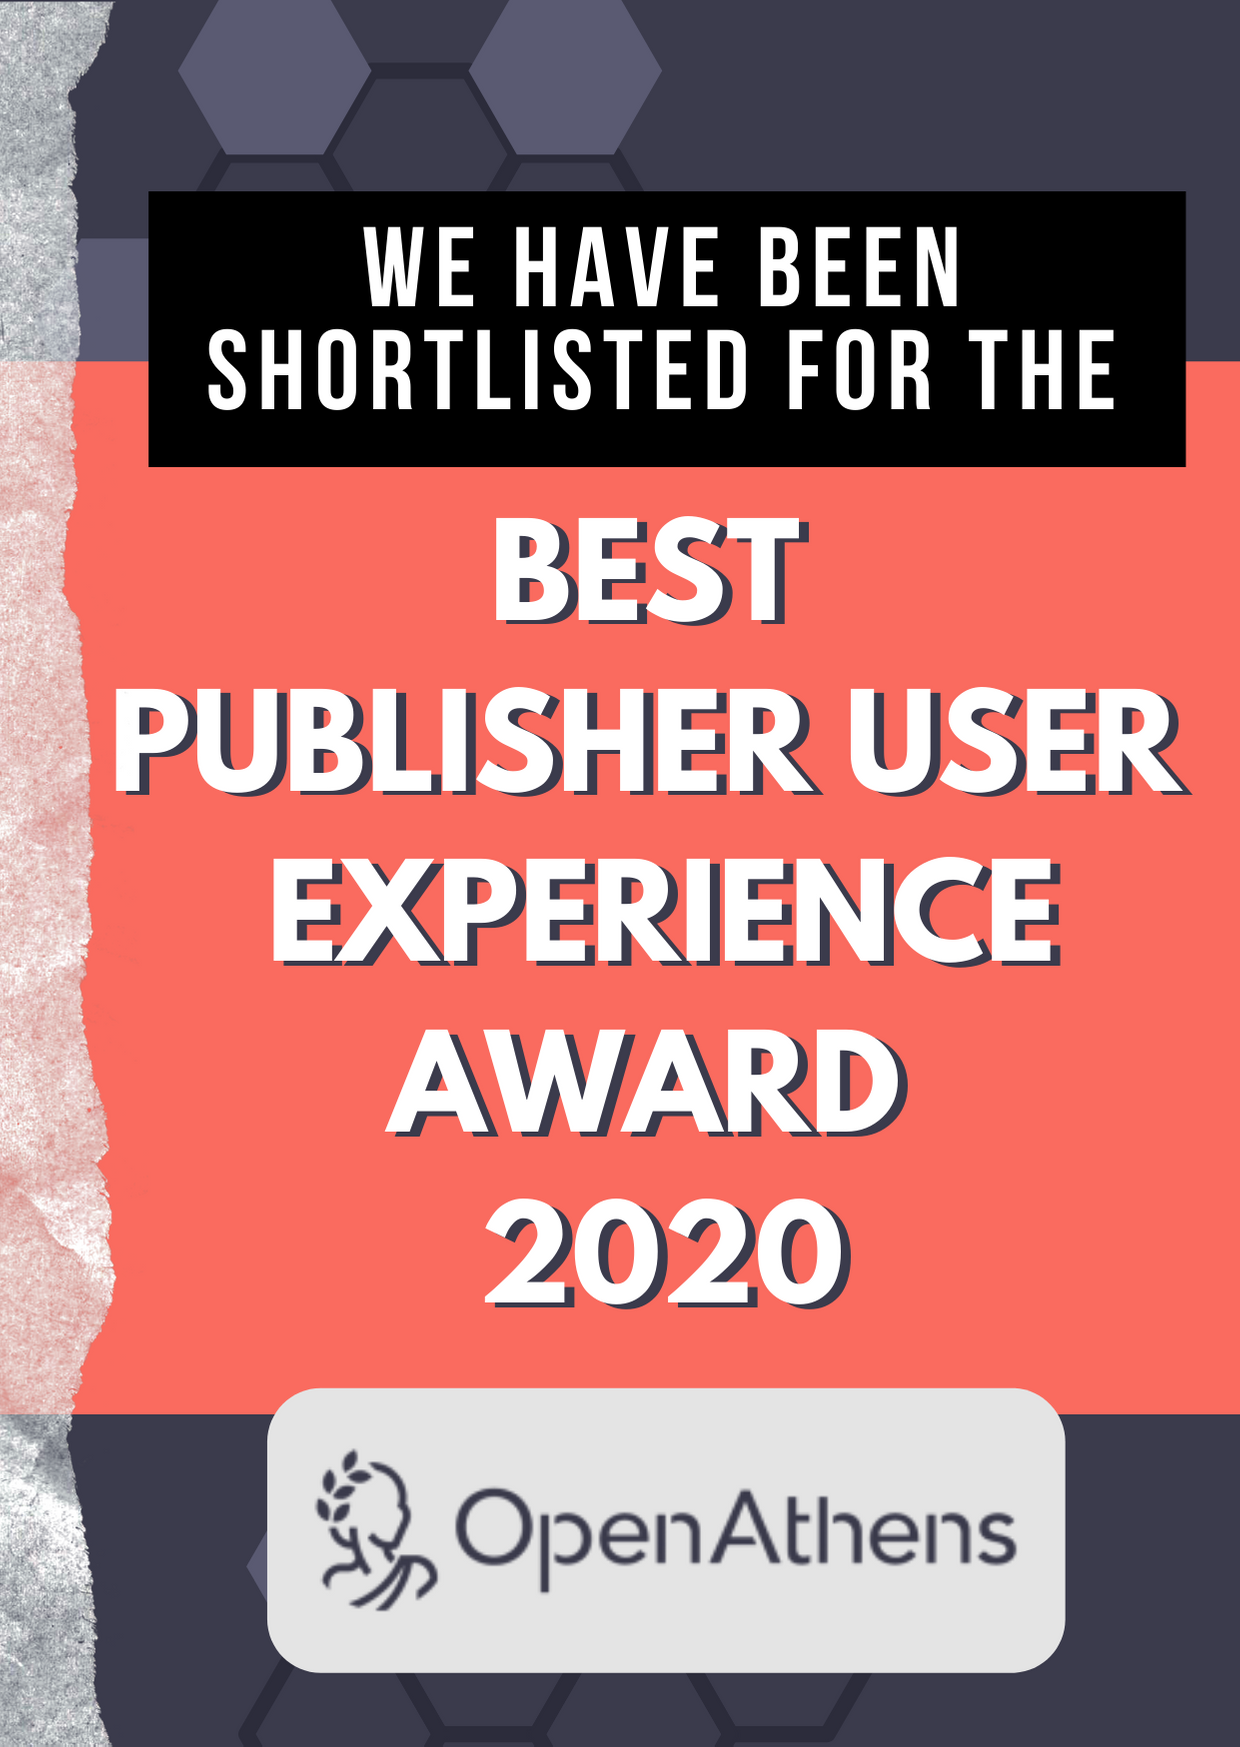 We have been shortlisted for the Best publisher user experience award 2020 from Open Athens!